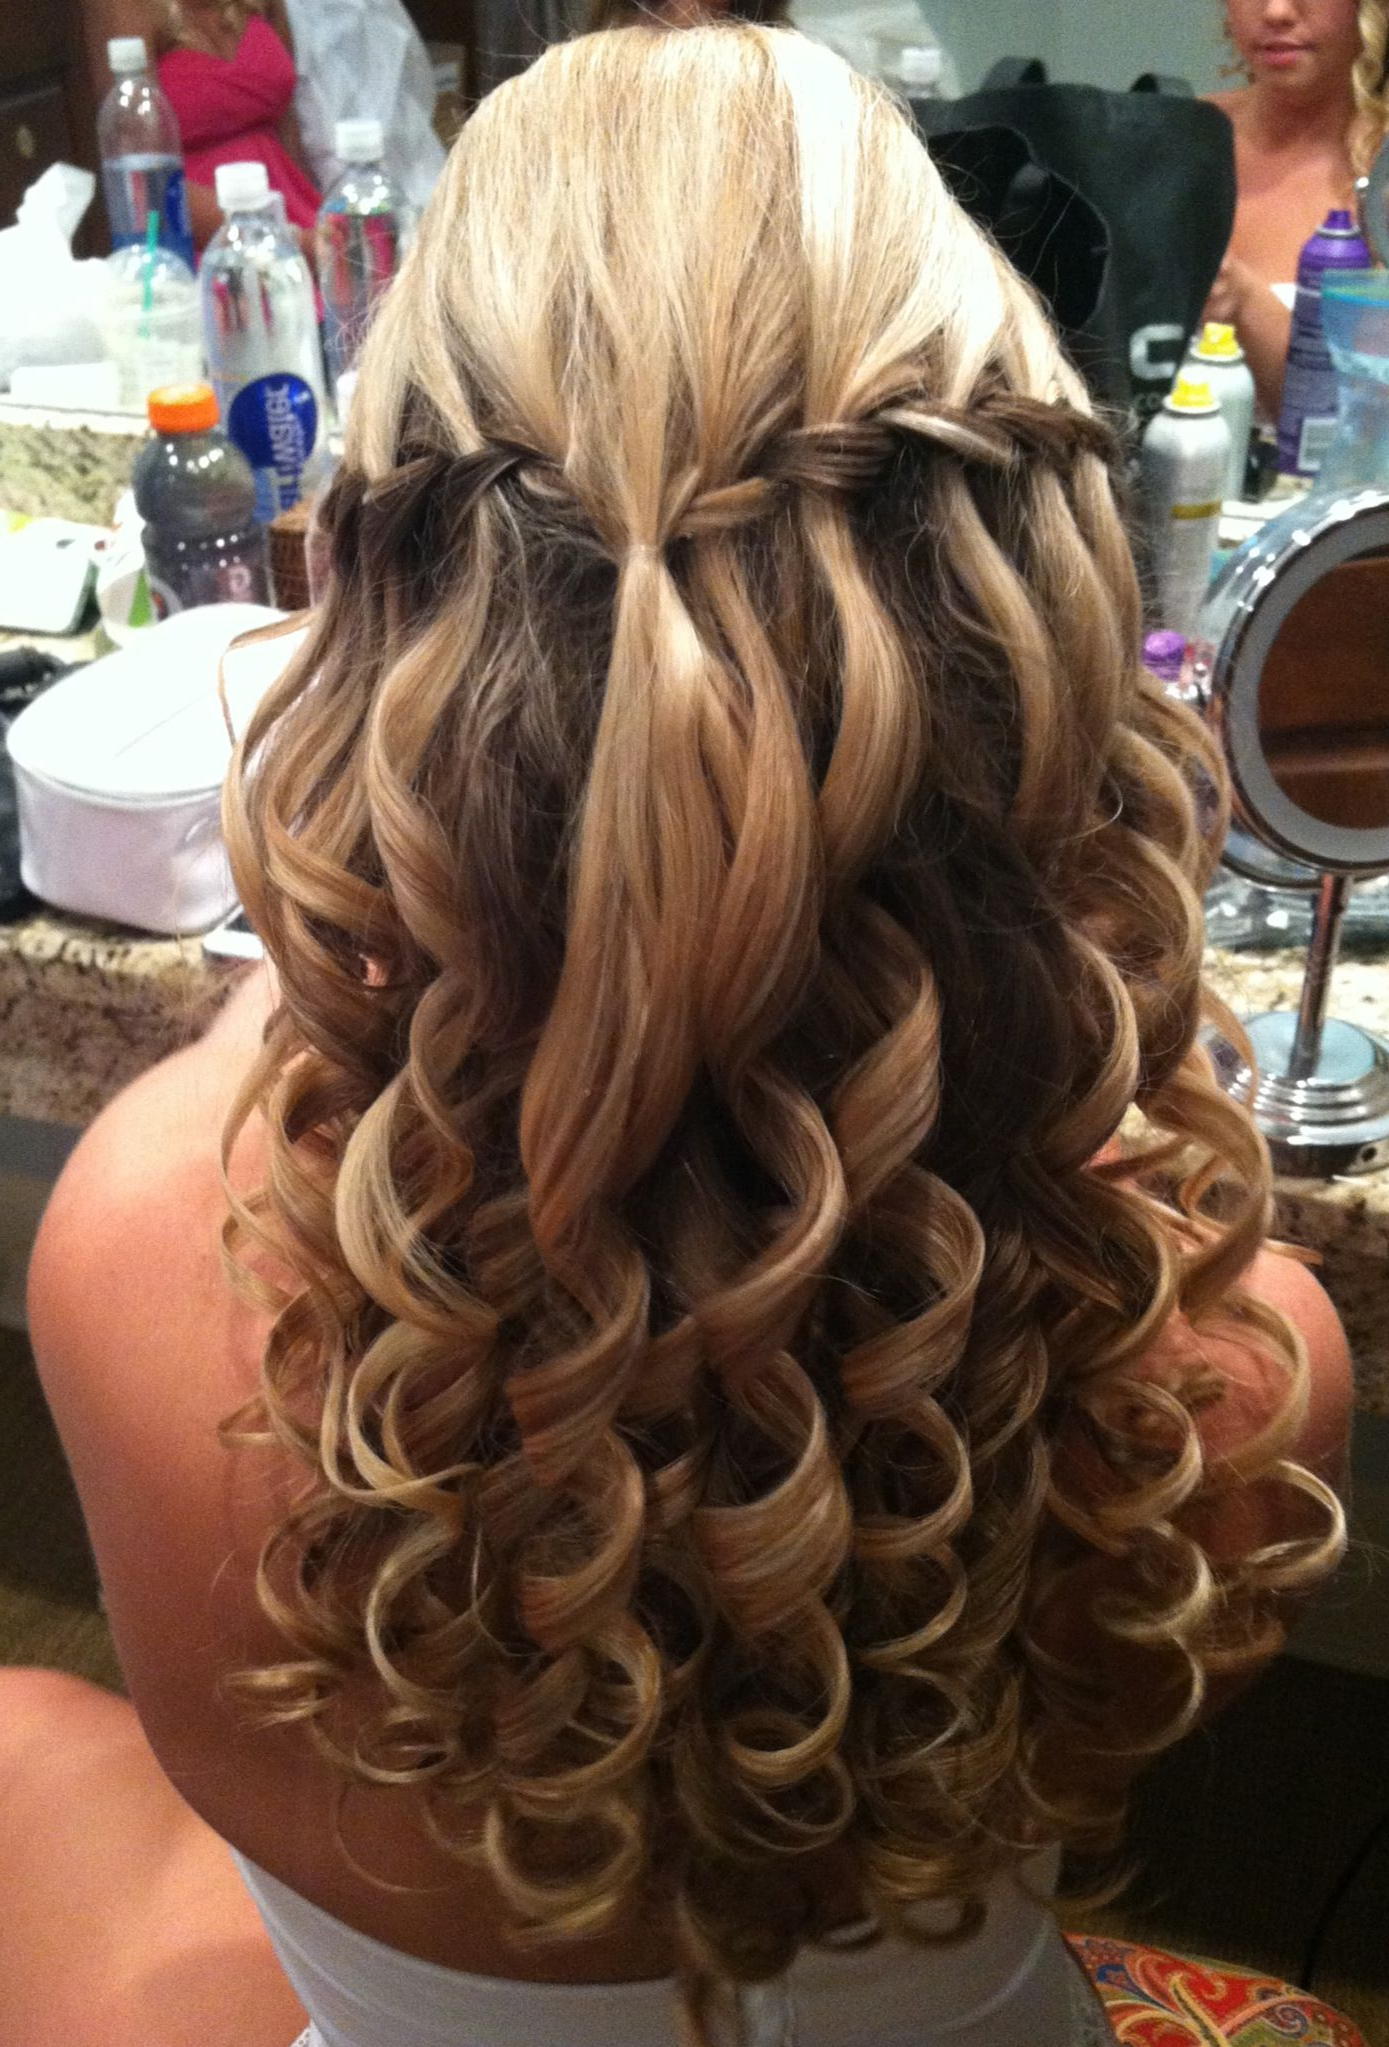 Recent Bumped Hairdo Bridal Hairstyles For Medium Hair Pertaining To Wedding/prom Hair. Waterfall Braids With A Bump And Big Curls (Gallery 6 of 20)